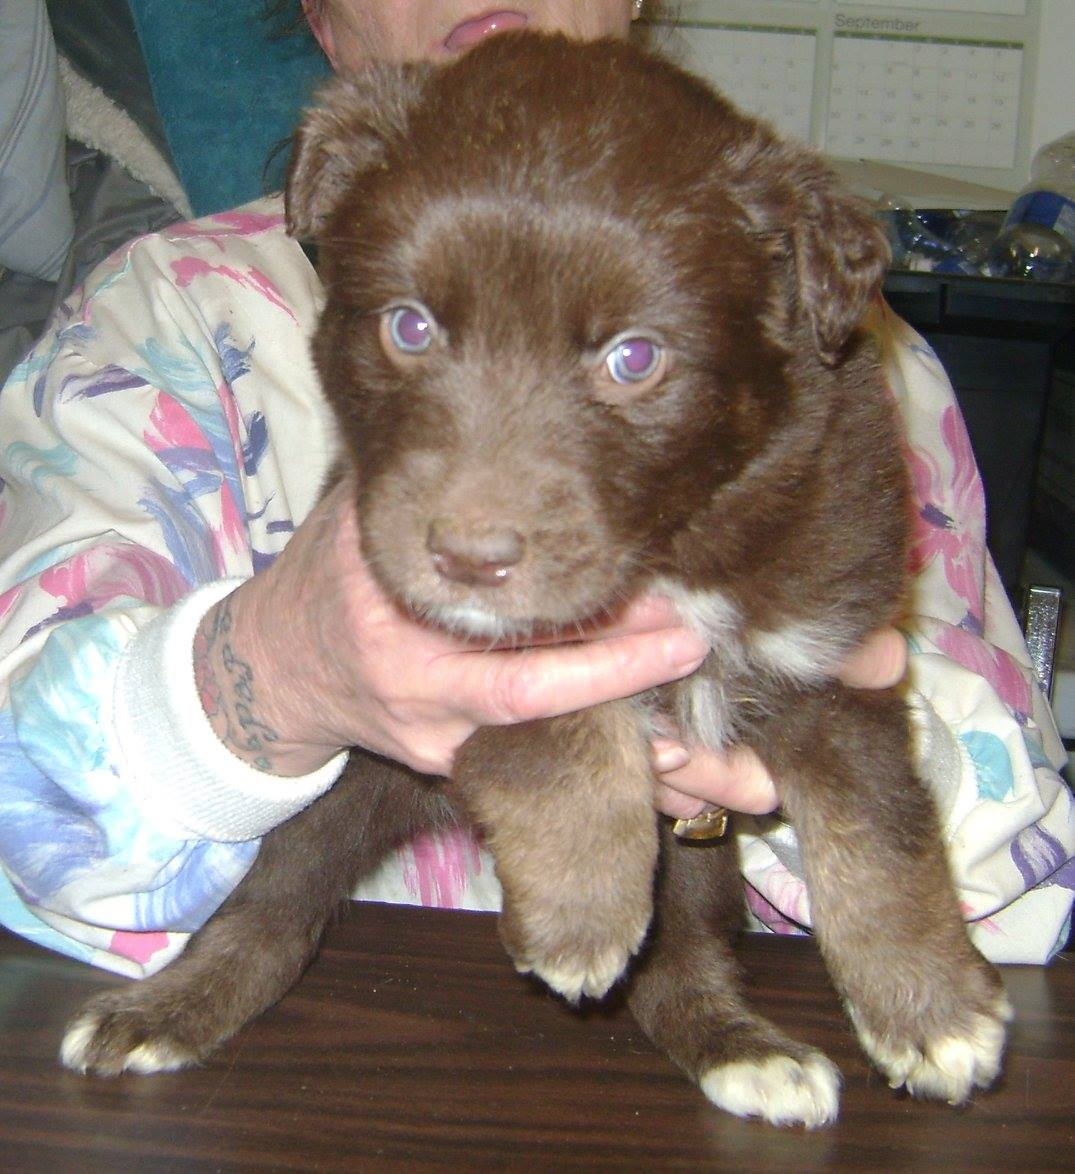 Tic is a female chocolate lab cross.